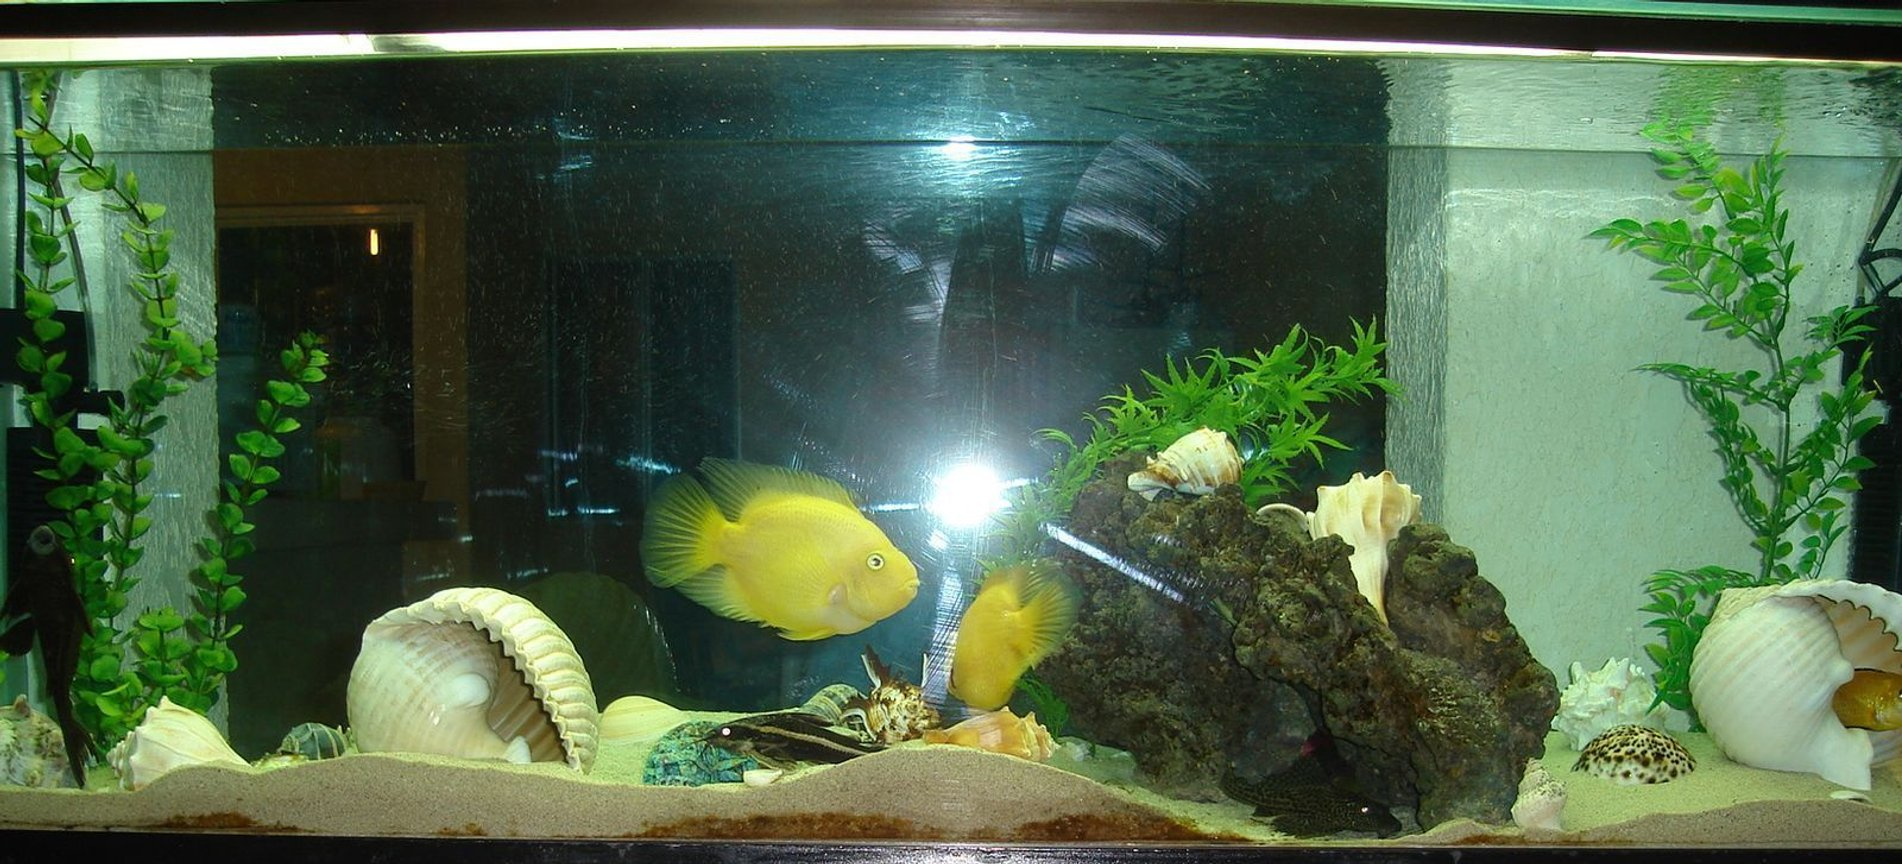 45 gallons freshwater fish tank (mostly fish and non-living decorations) - acuario de ciclidos con caracoles marinos, espero les guste